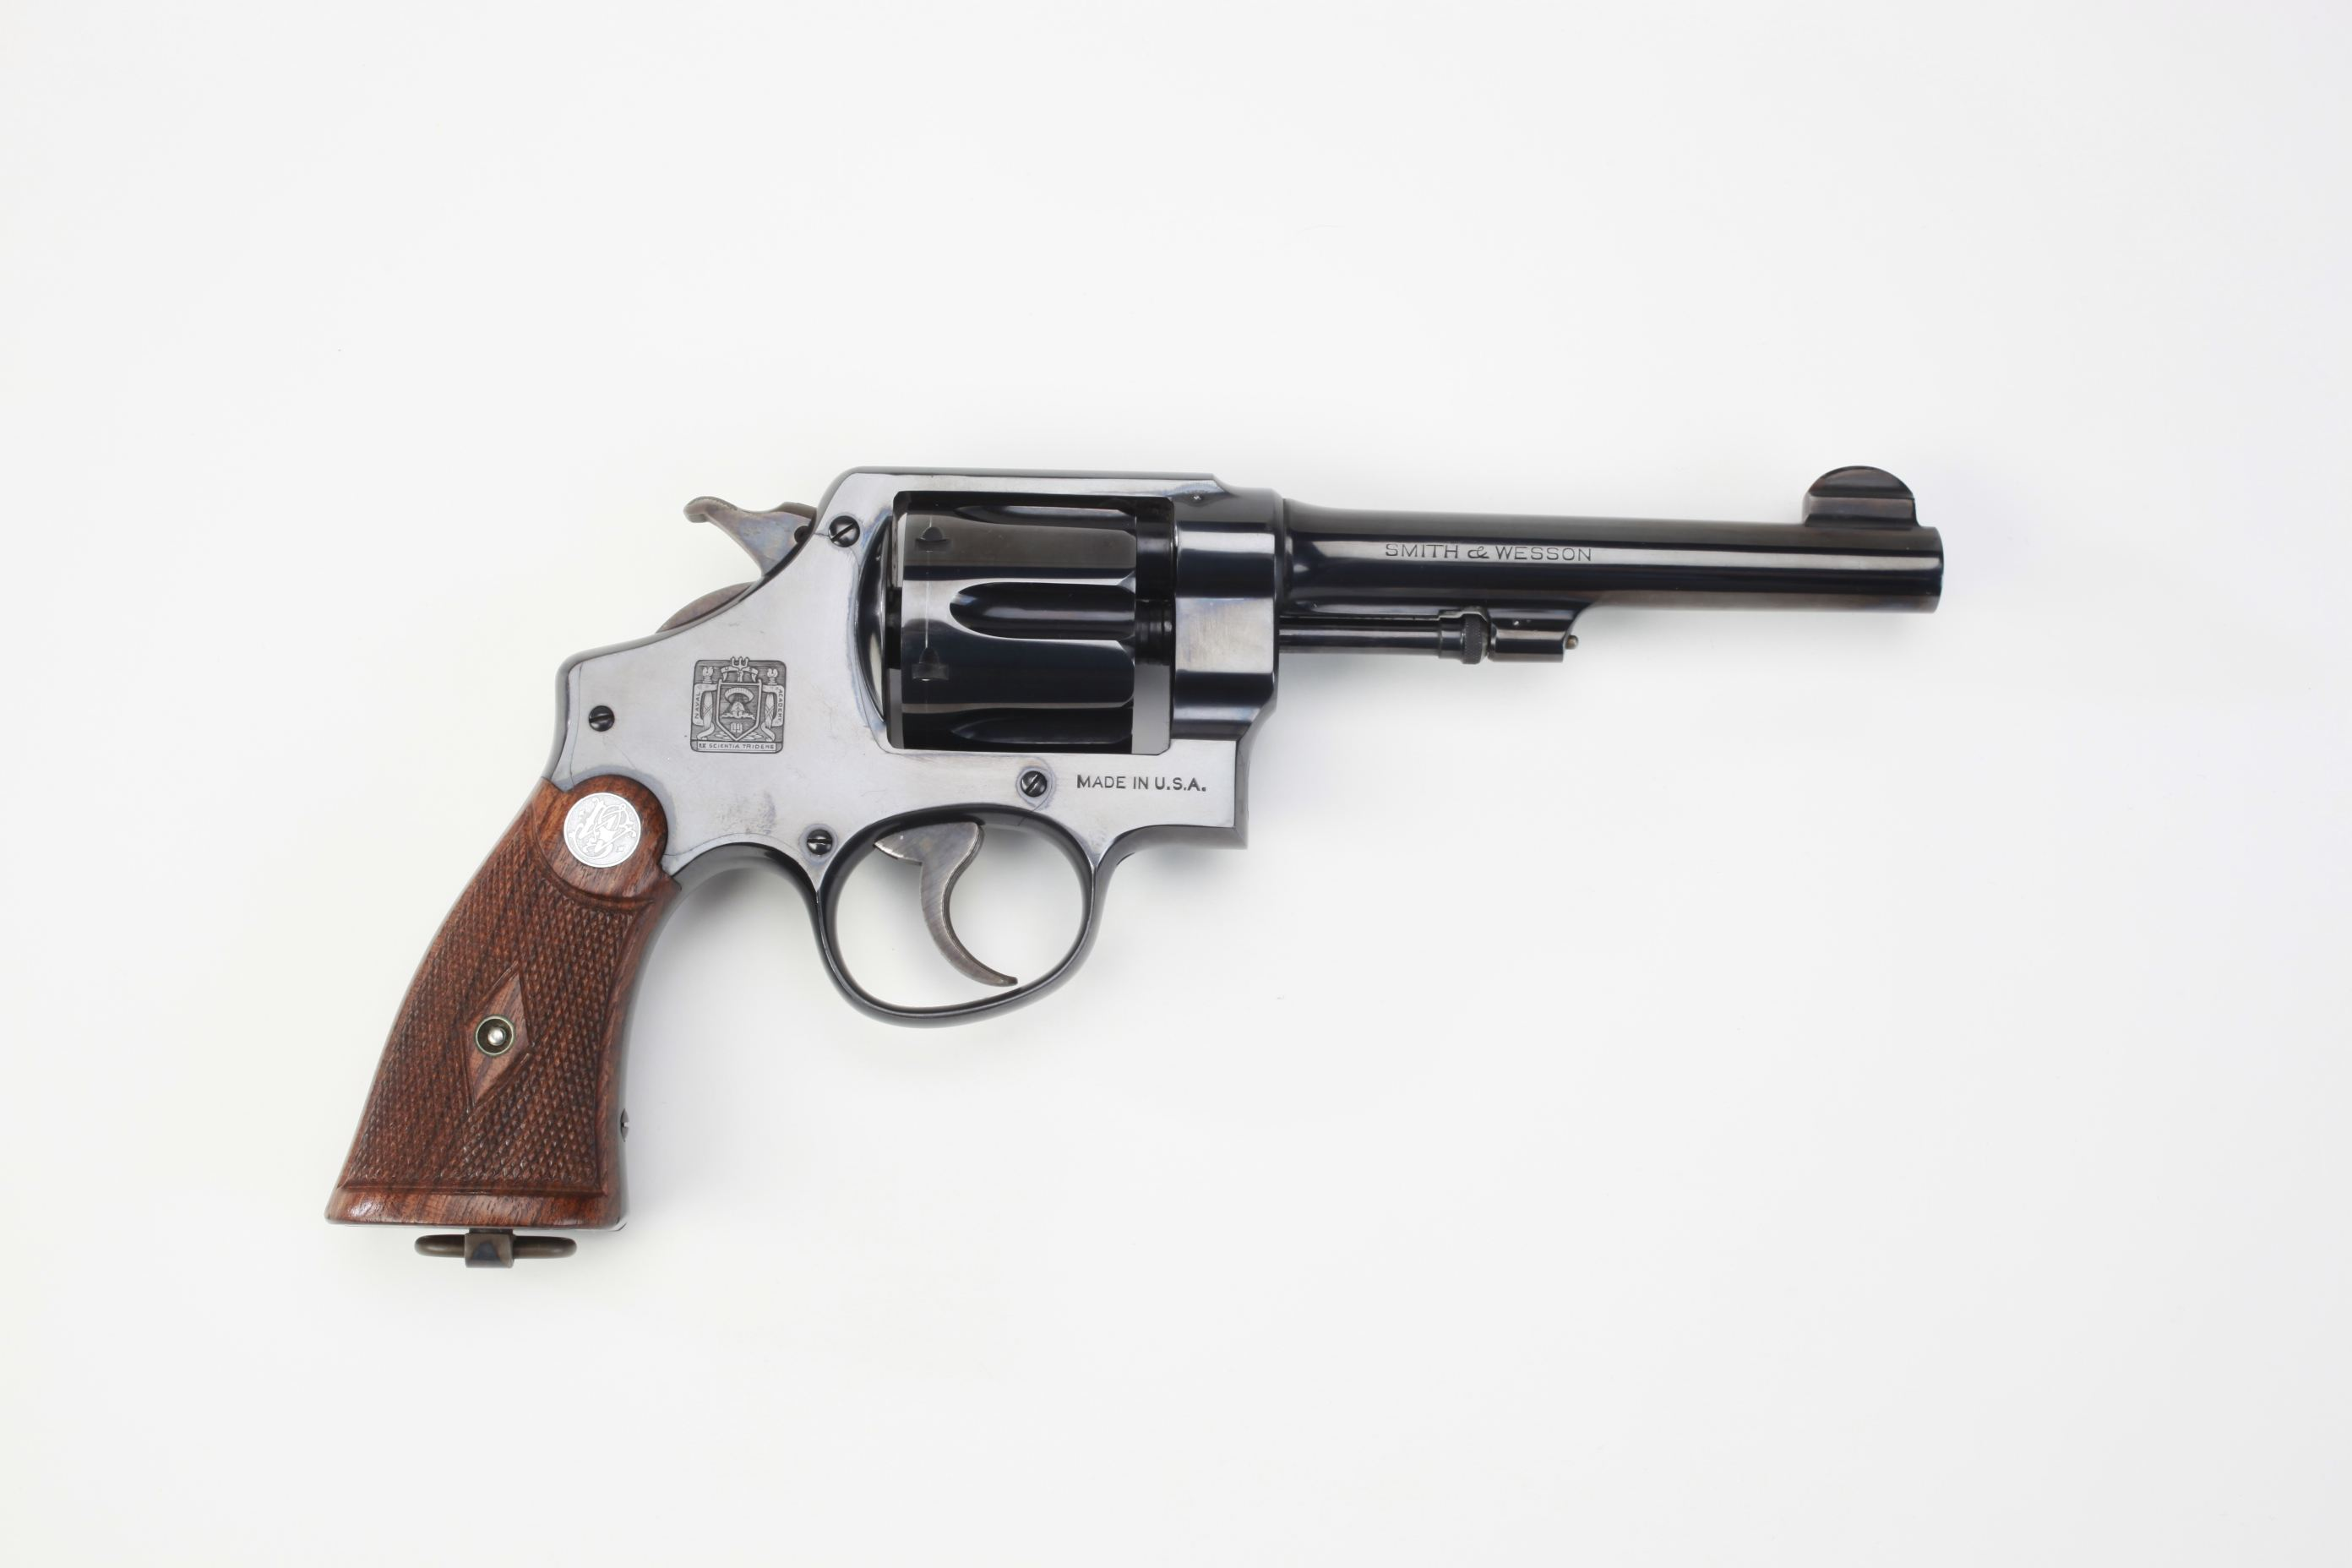 U.S. Smith and Wesson Model 1917 Revolver